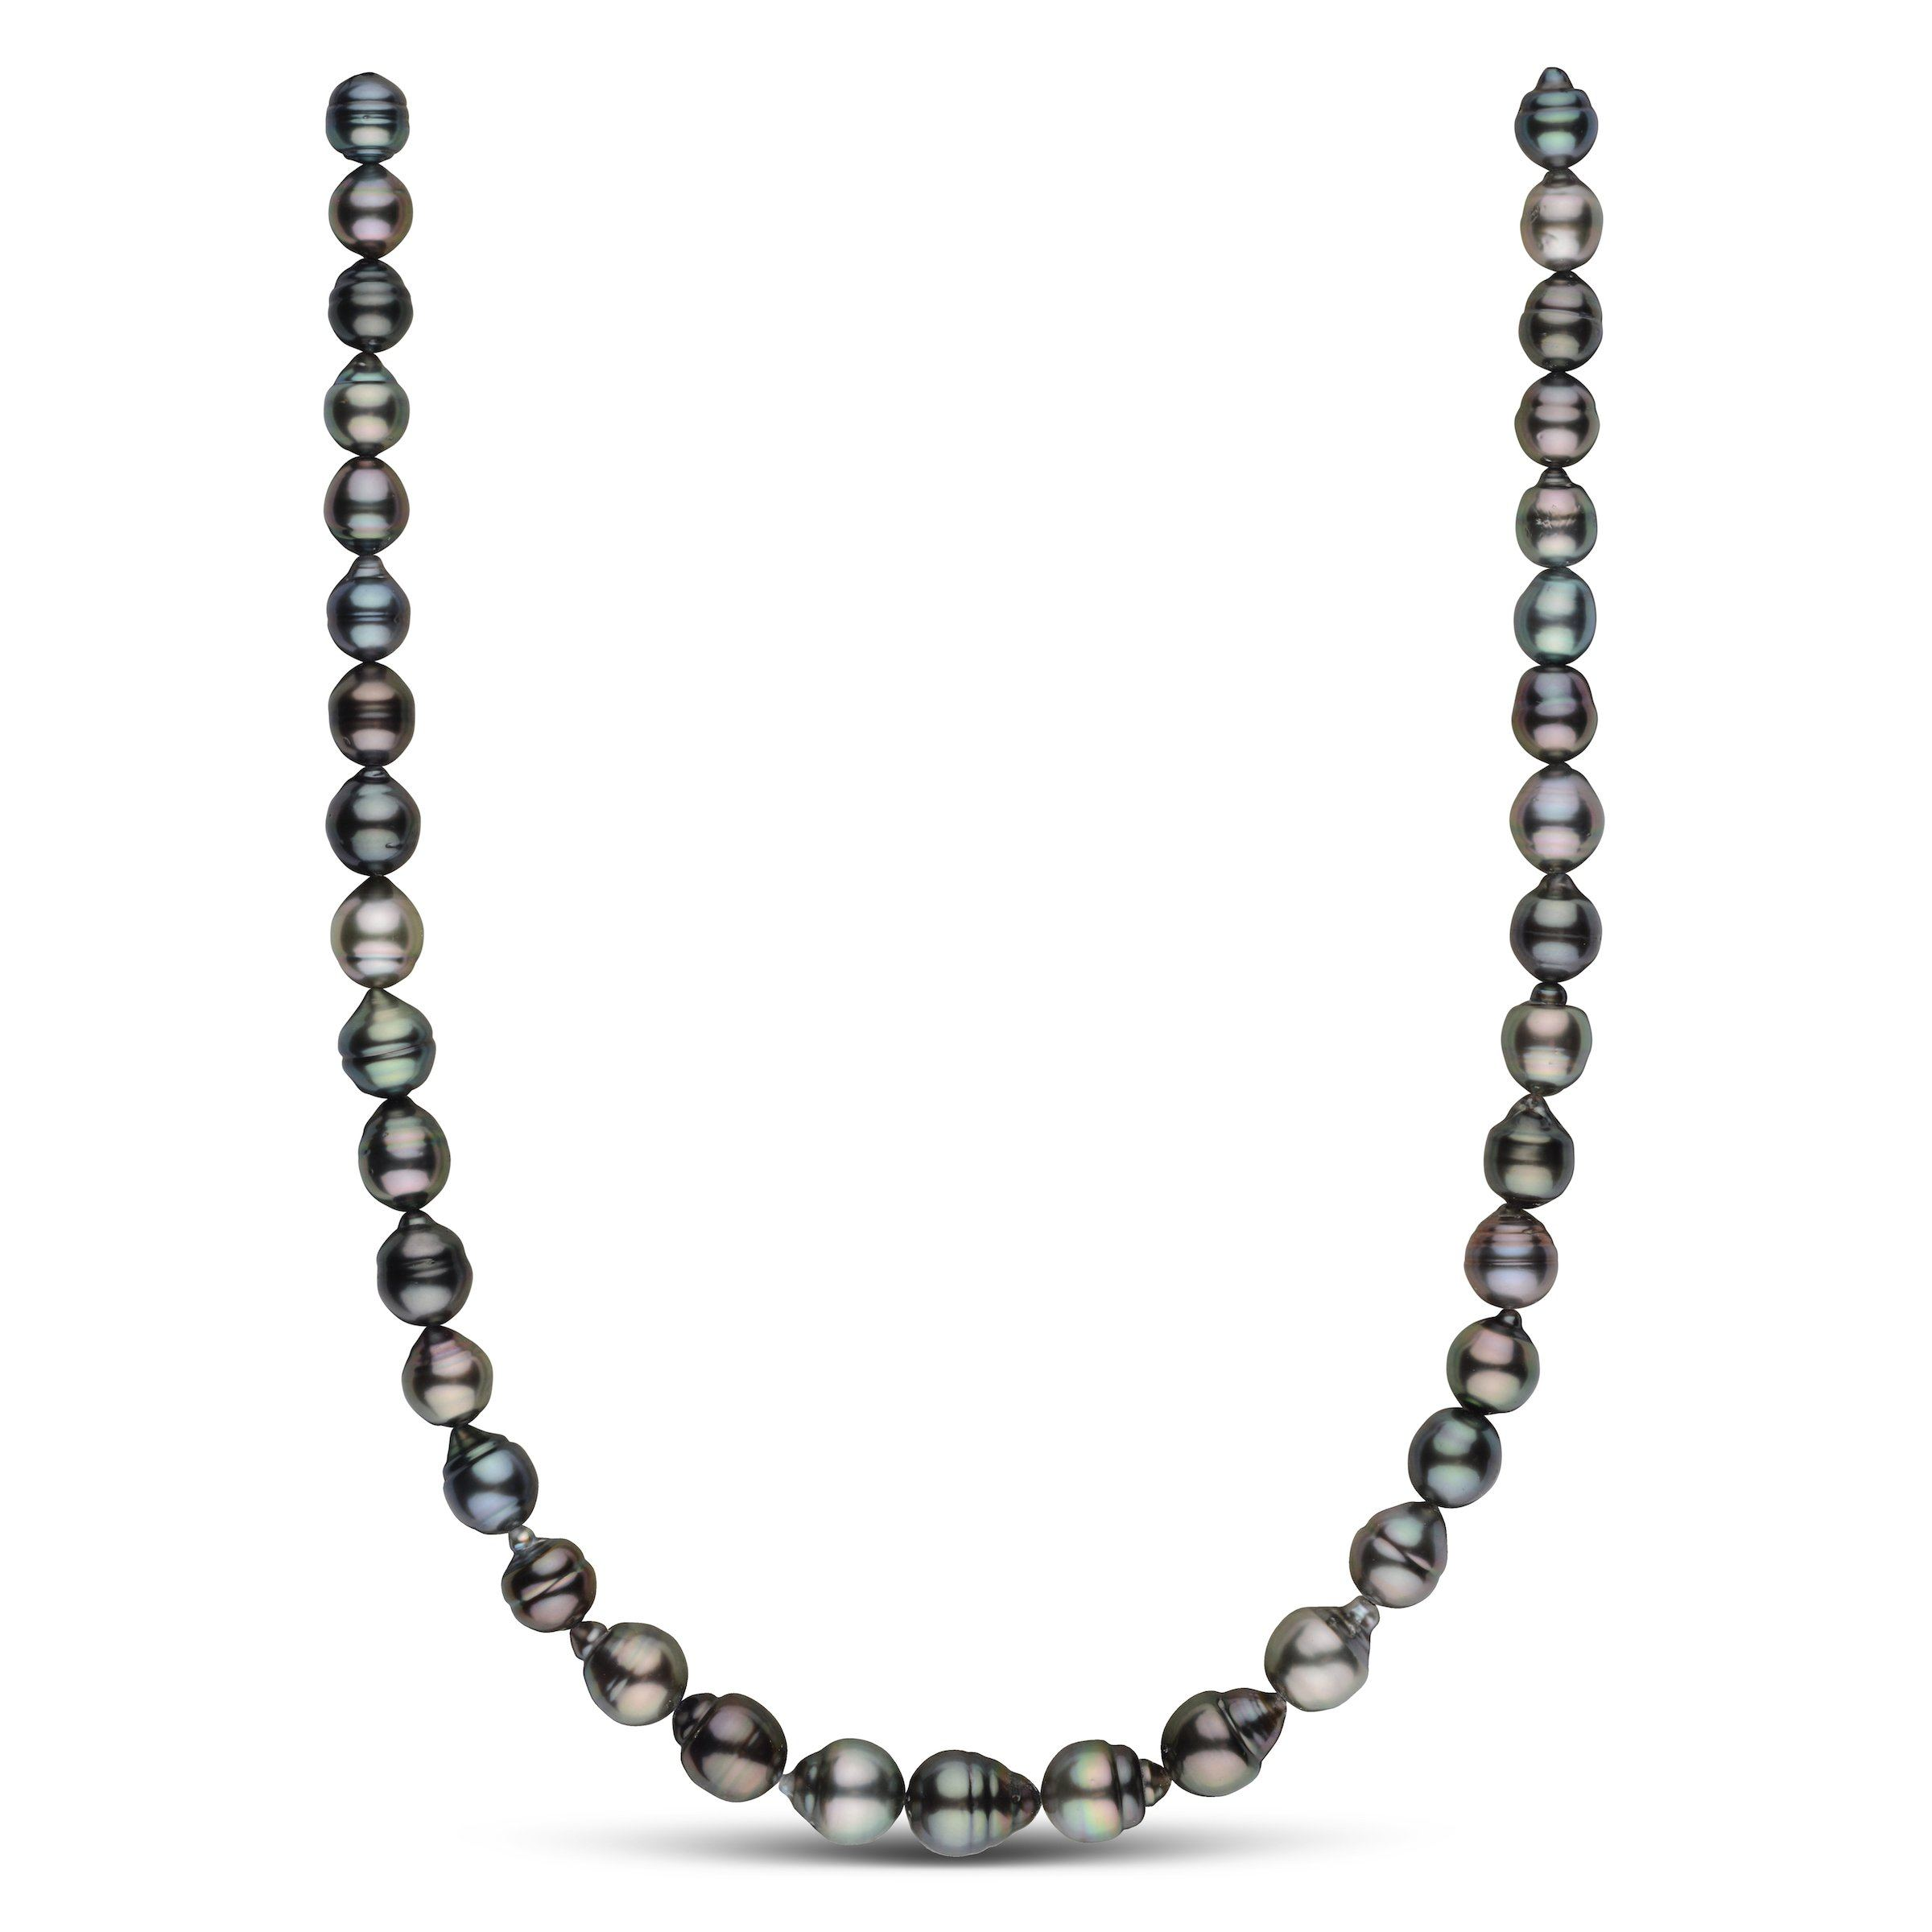 8.7-10.9 mm AAA Tahitian Baroque Pearl Necklace